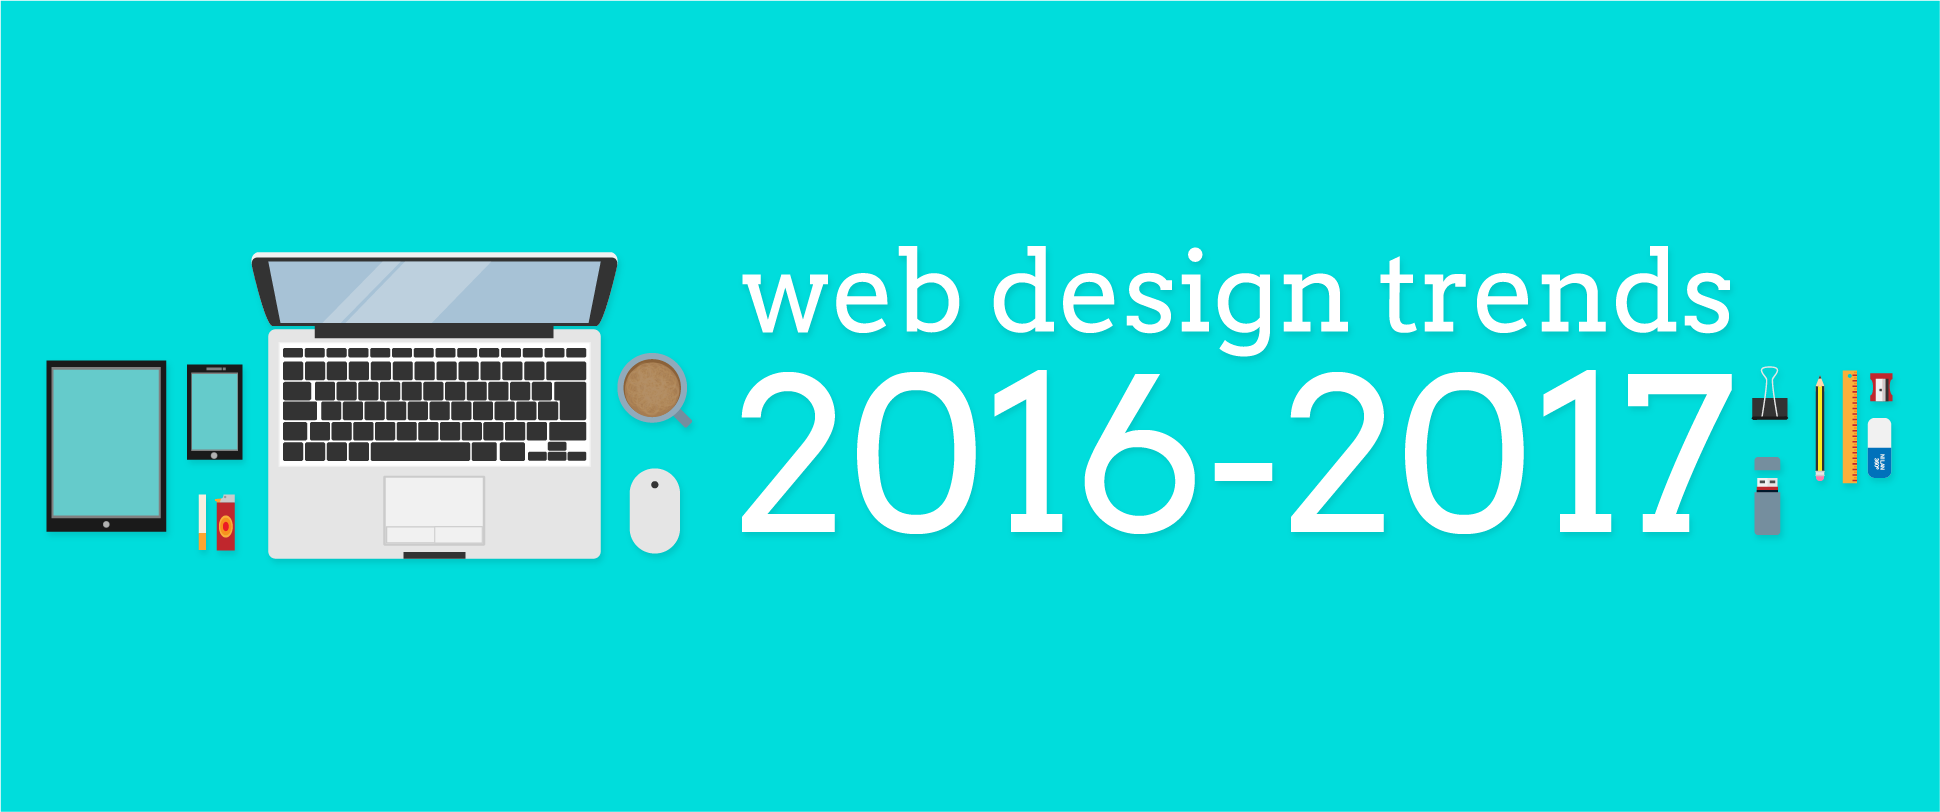 New Trends for Web Design in 2017 - Image 1